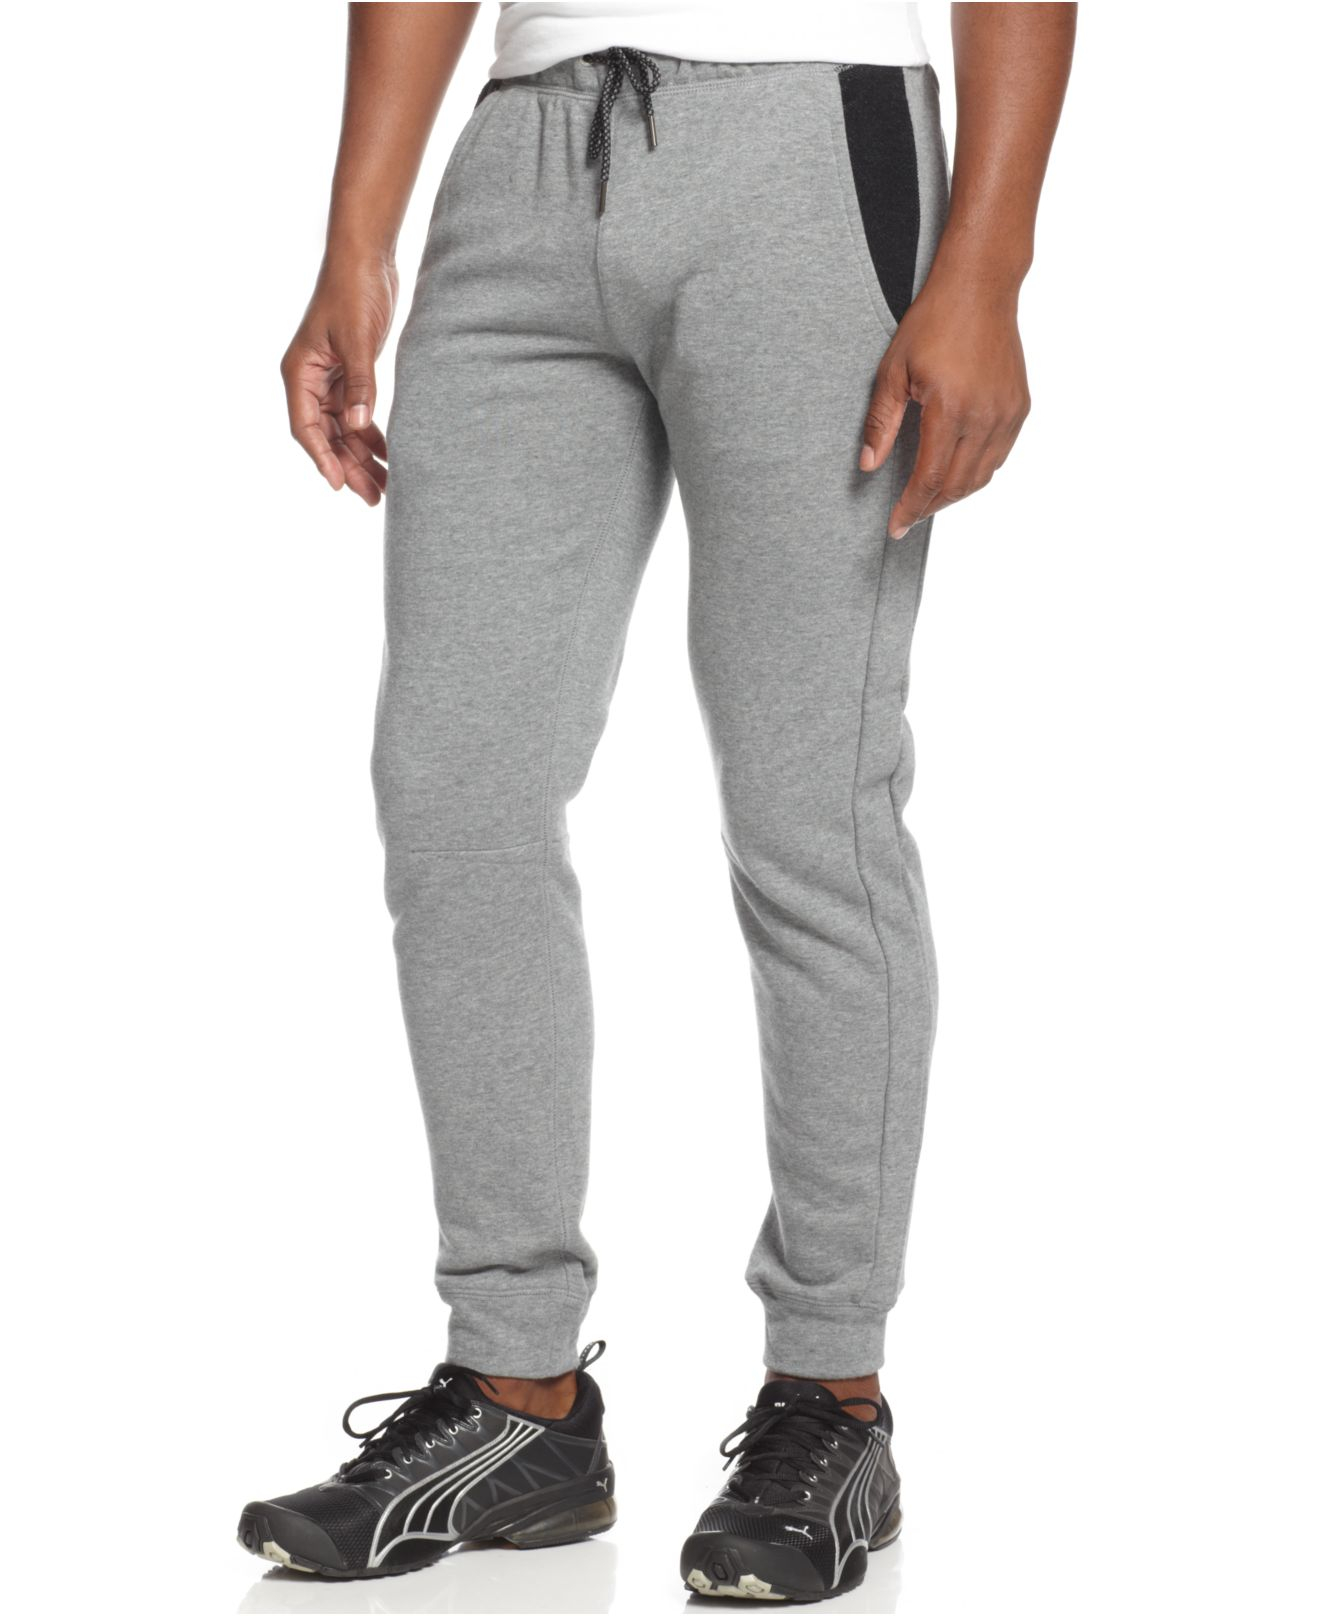 3f6adc8f9ab1 Lyst - PUMA Fleece Jogger Pants in Gray for Men